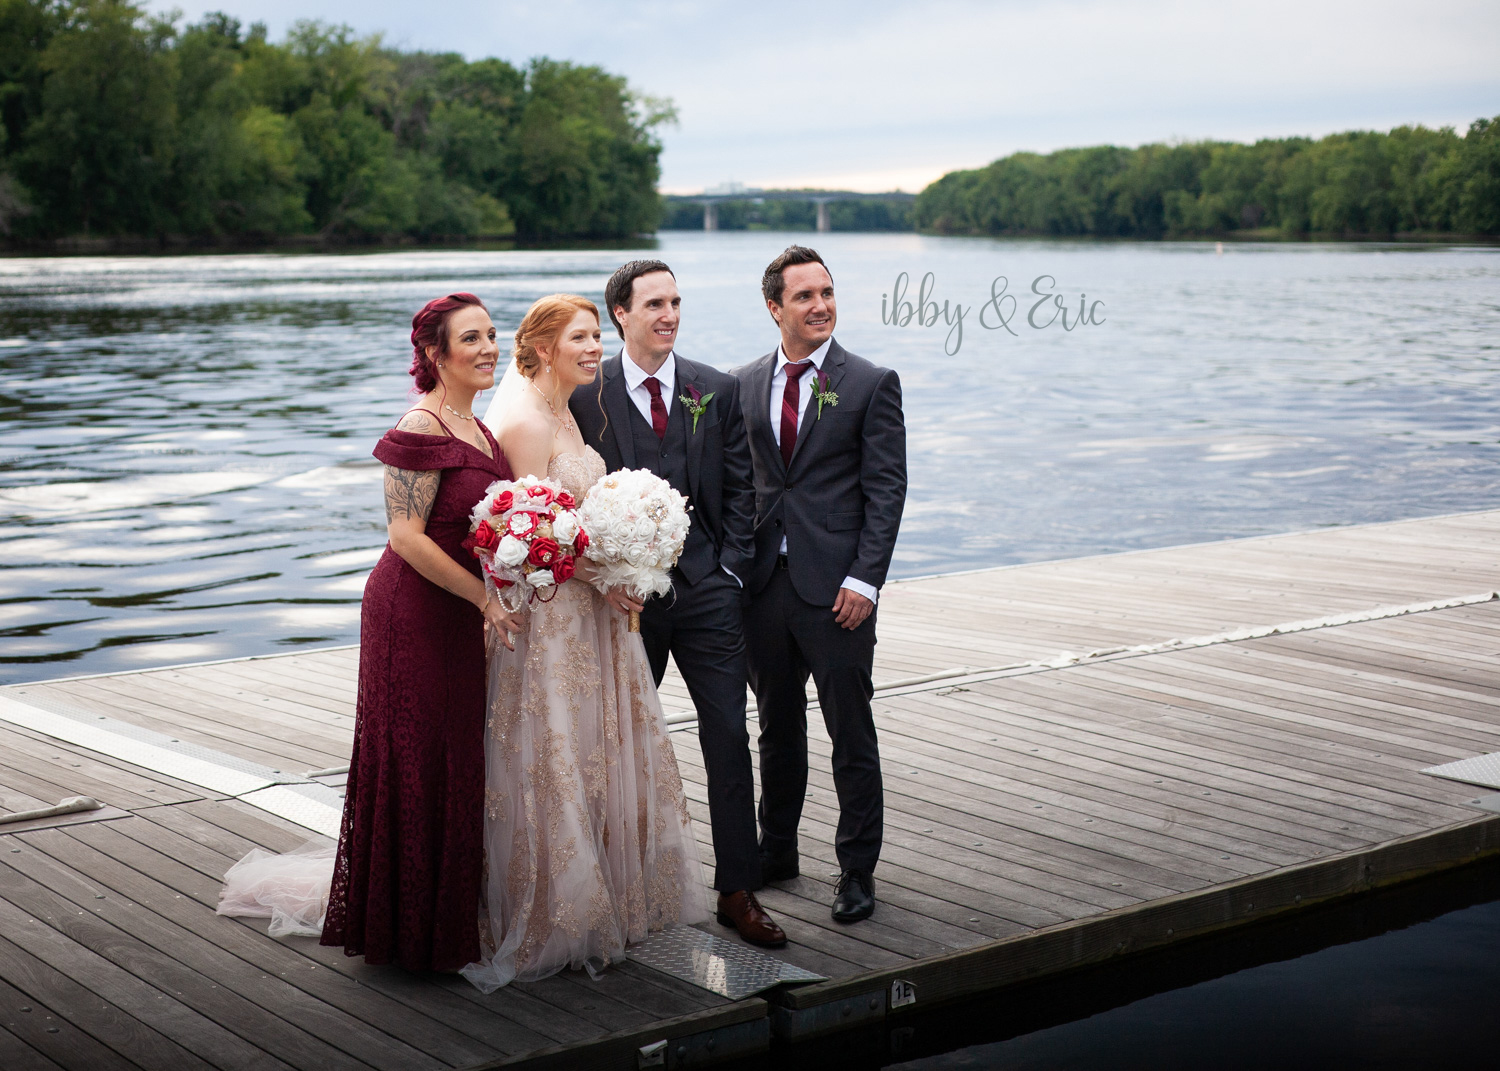 Maid of Honor, Bride, Groom and Best Man stand together on a dock and smile.